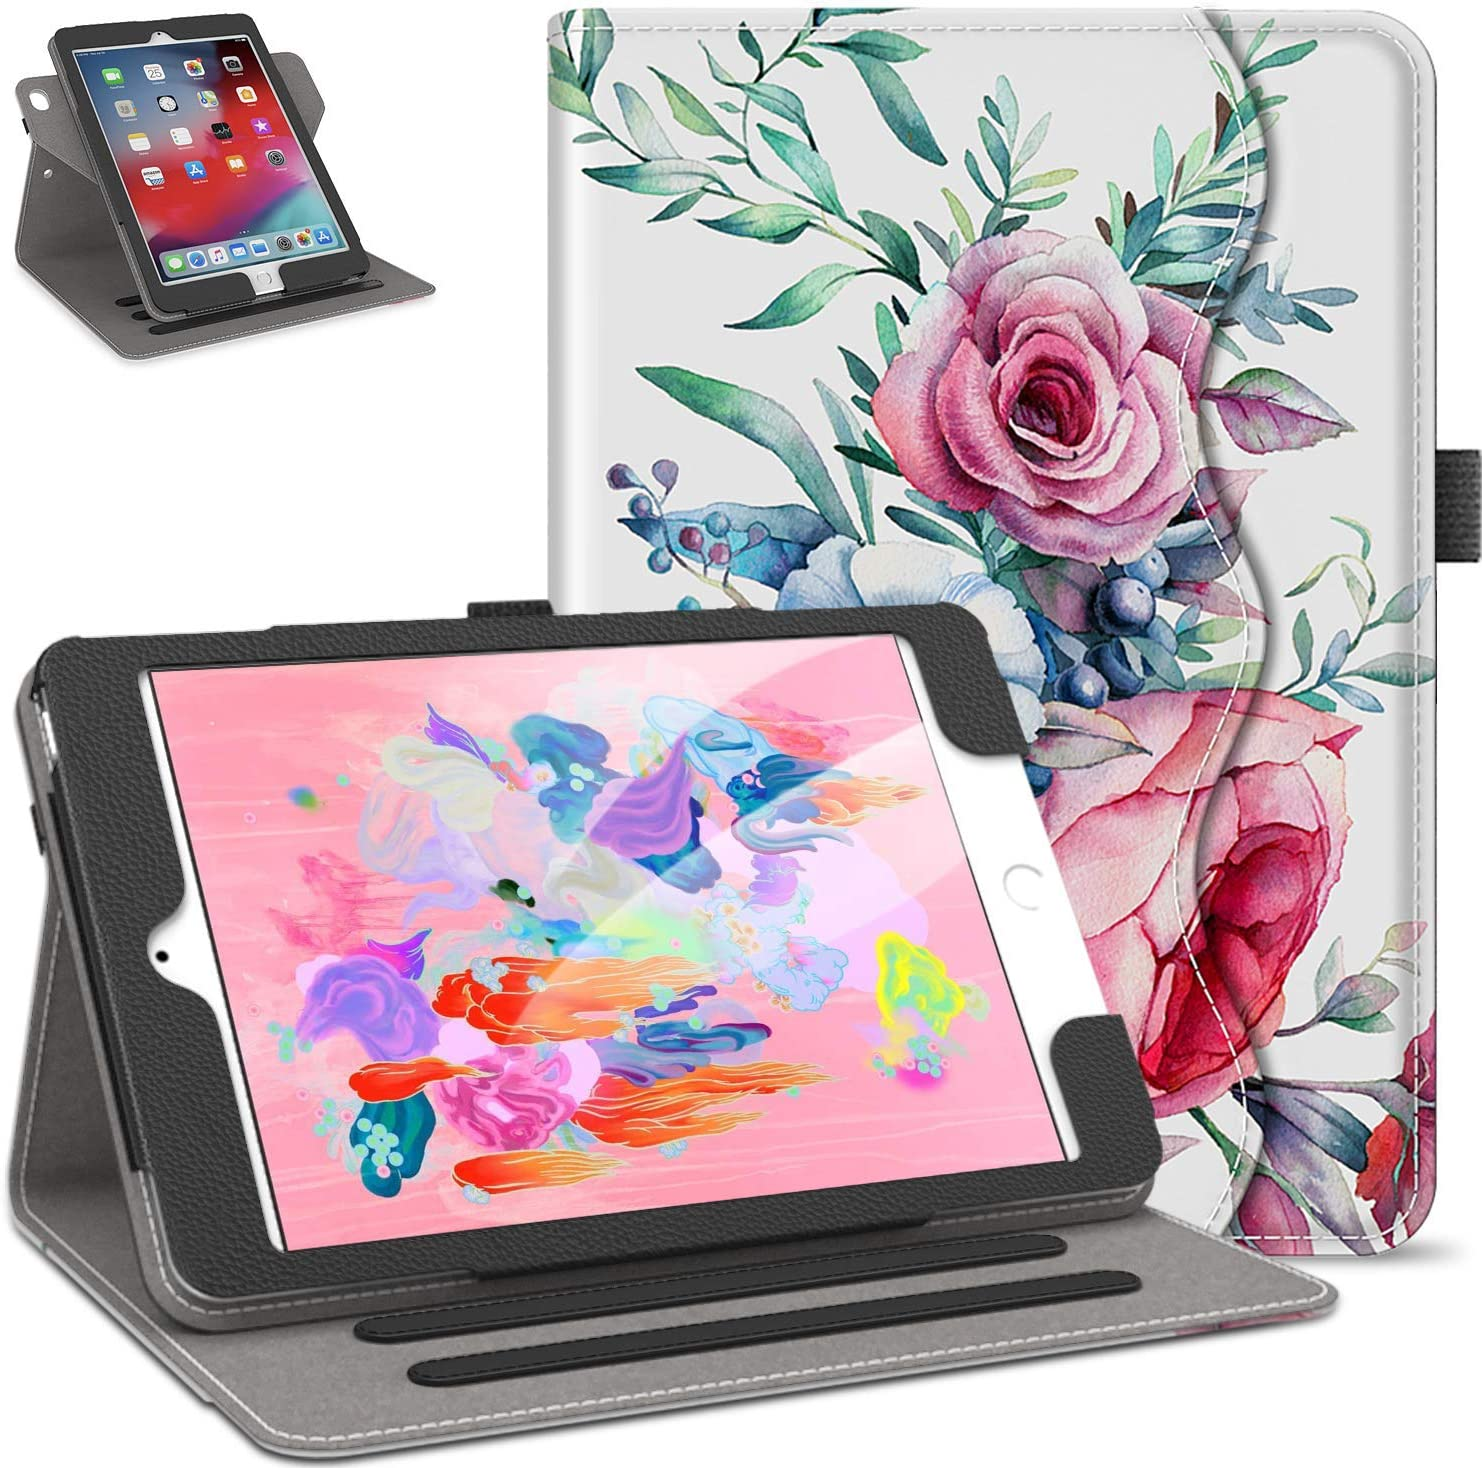 Retear Case for iPad 9.7 inch 2018/2017 360 Degree Rotating PU Lightweight Smart Leather Stand Apple Cover with Auto Wake/Sleep